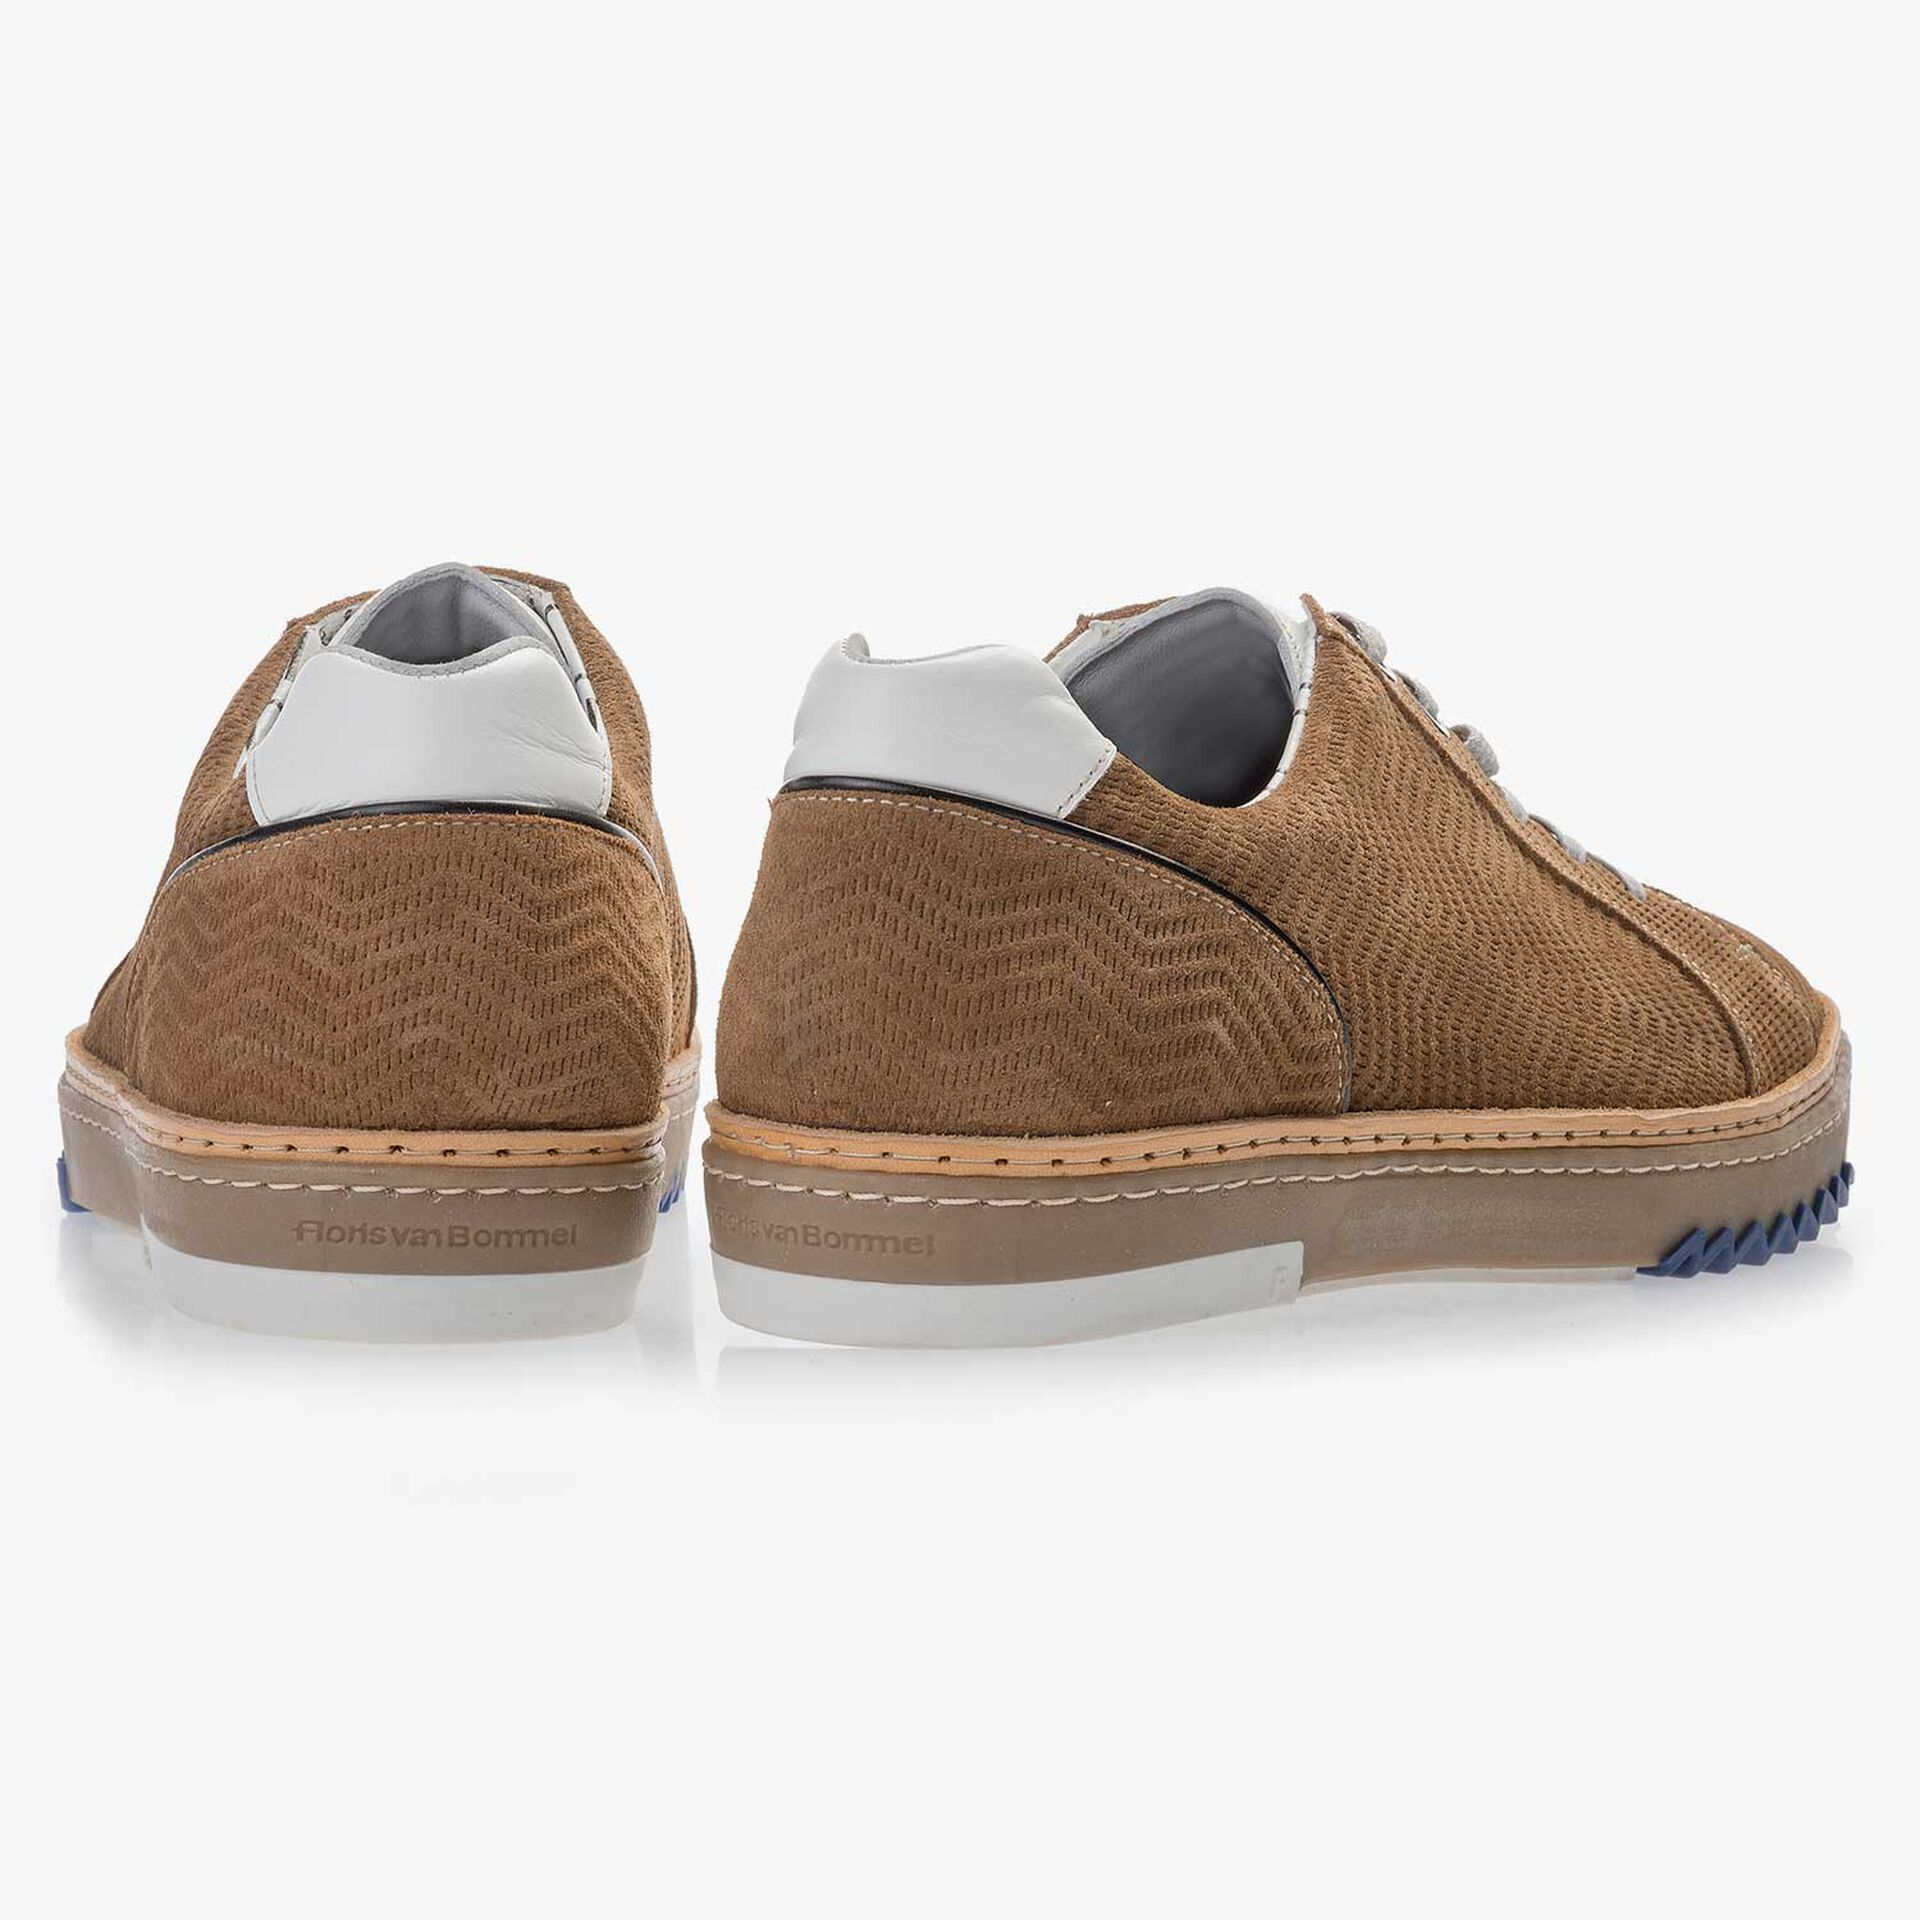 Cognac-coloured, patterned leather sneaker